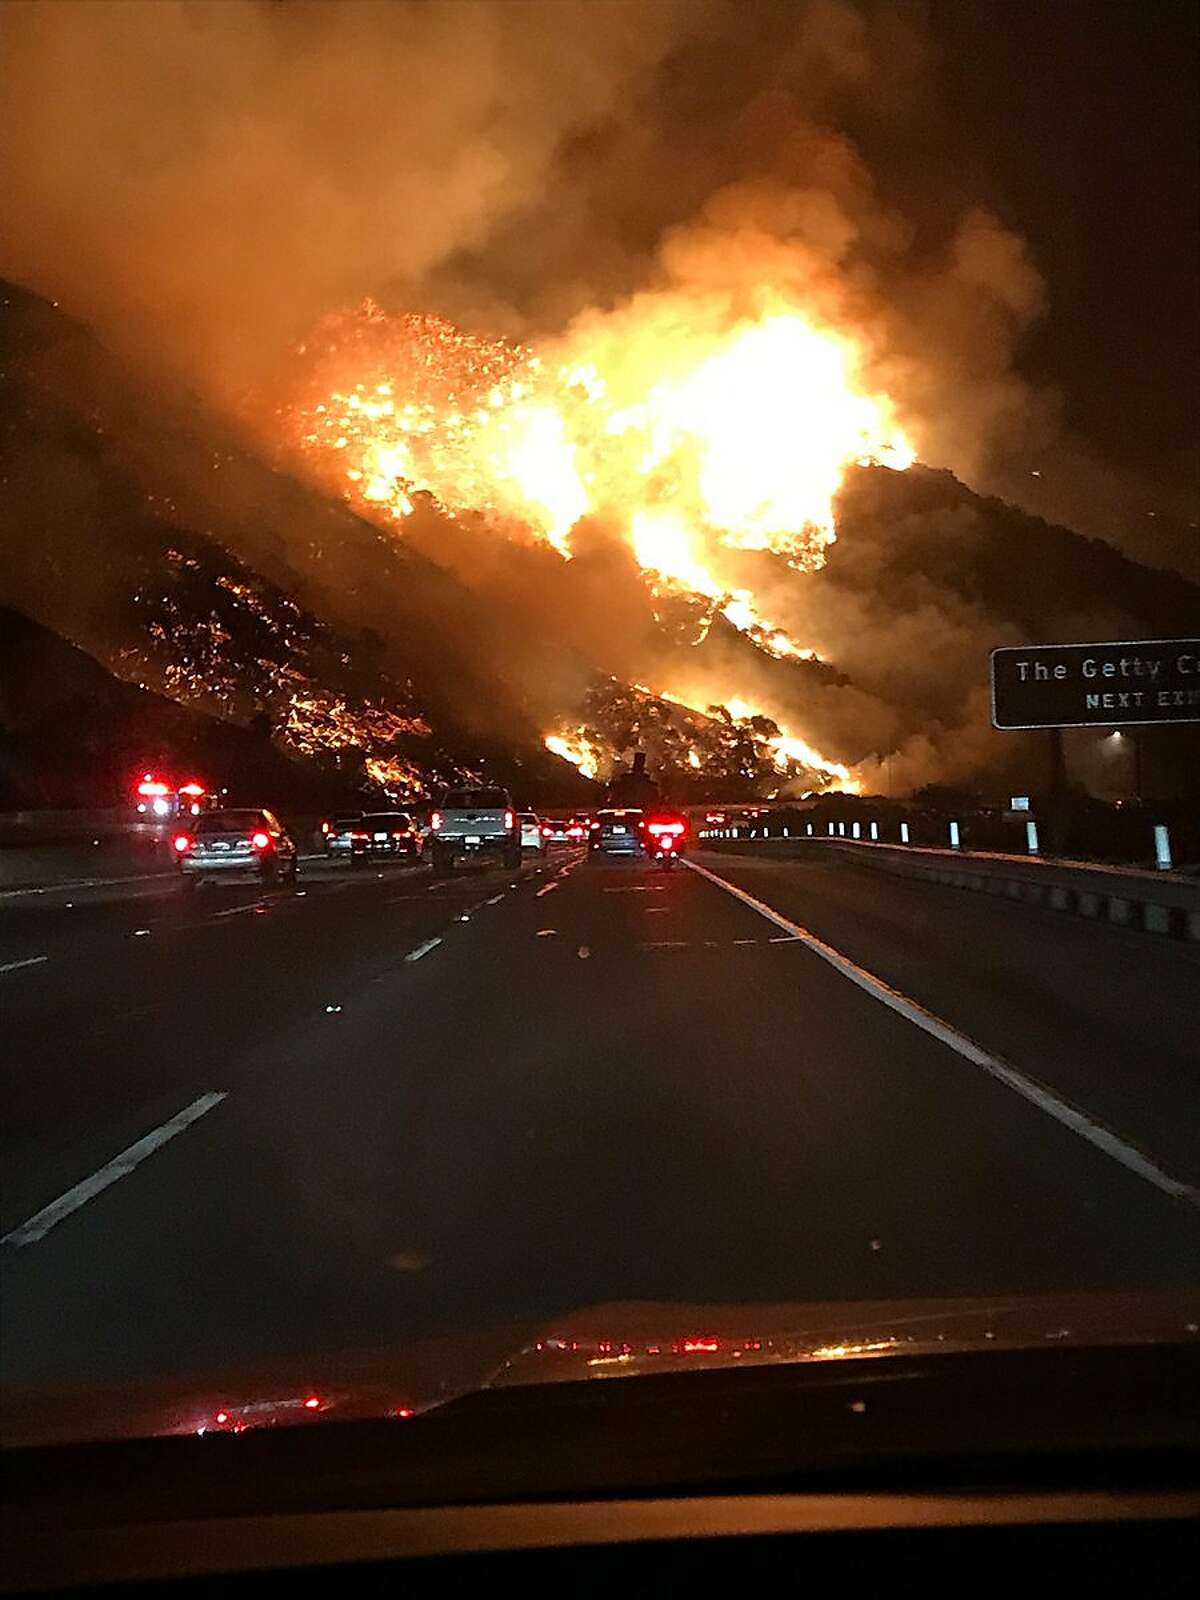 A view of the Skirball Fire from southbound 405. The fire is tearing through Bel-Air and forcing mandatory evacuations in the area.